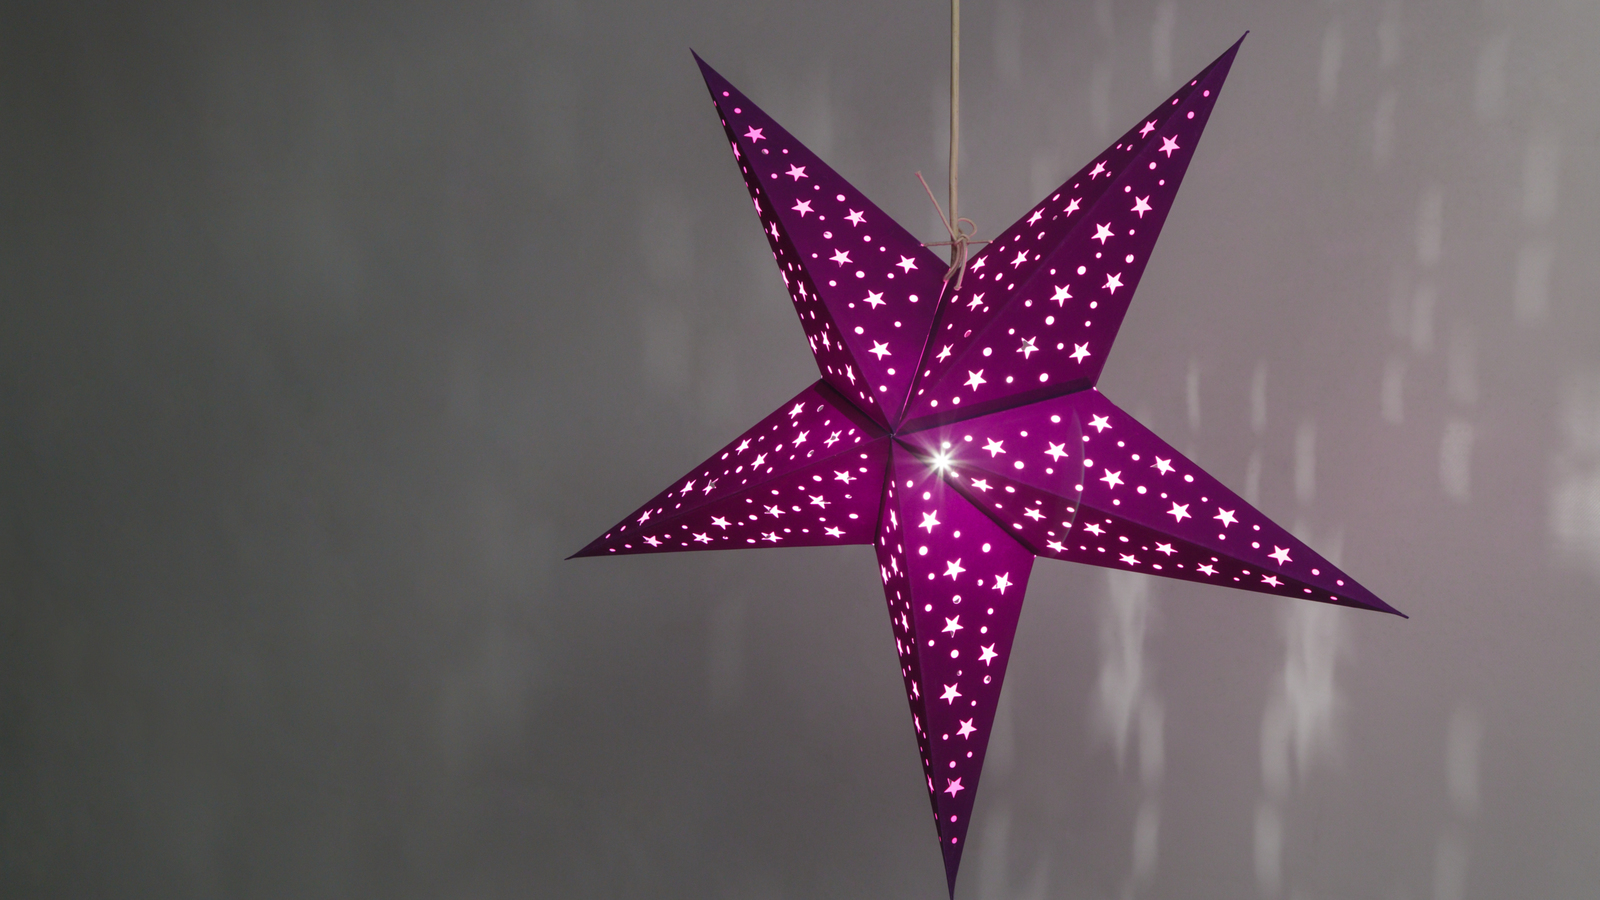 Starry Paper Star Hanging Ceiling Lampshades Light Shades